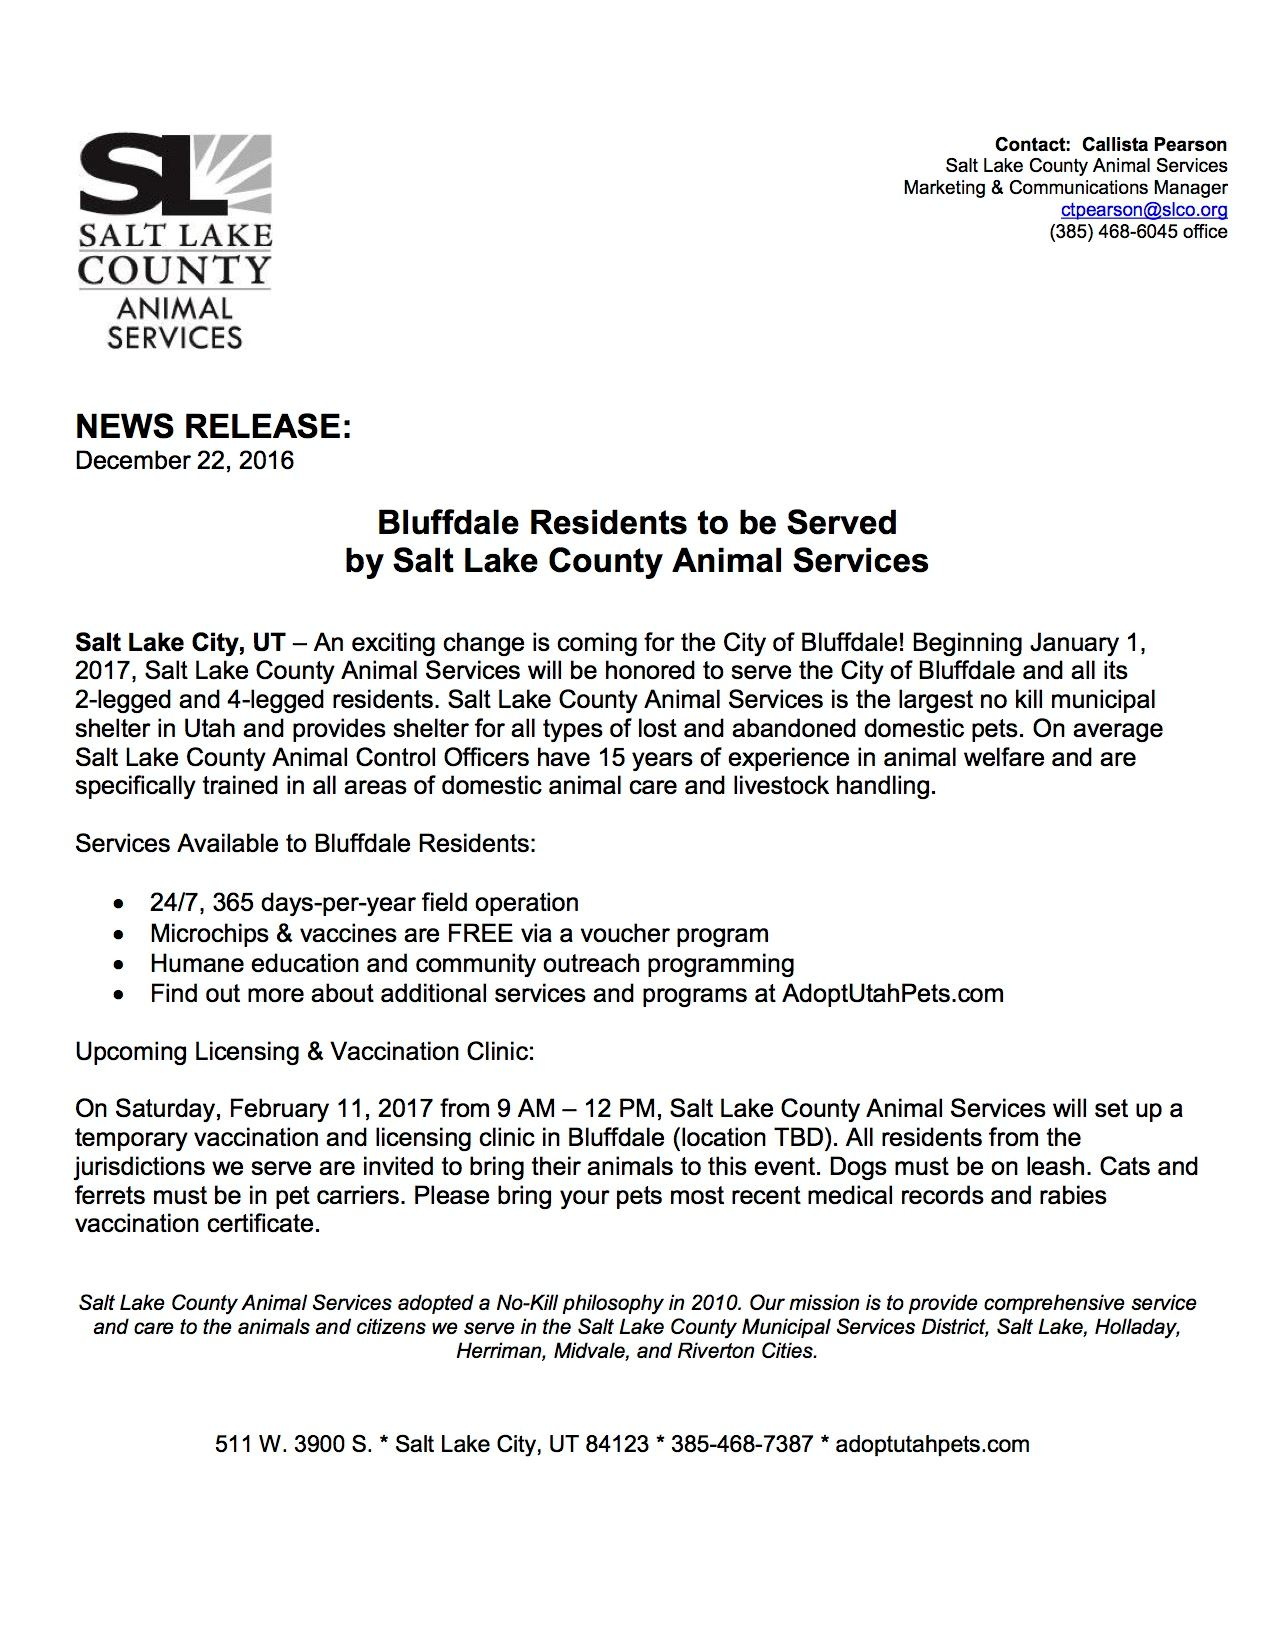 NEWS RELEASE Bluffdale residents served by SLCOAS